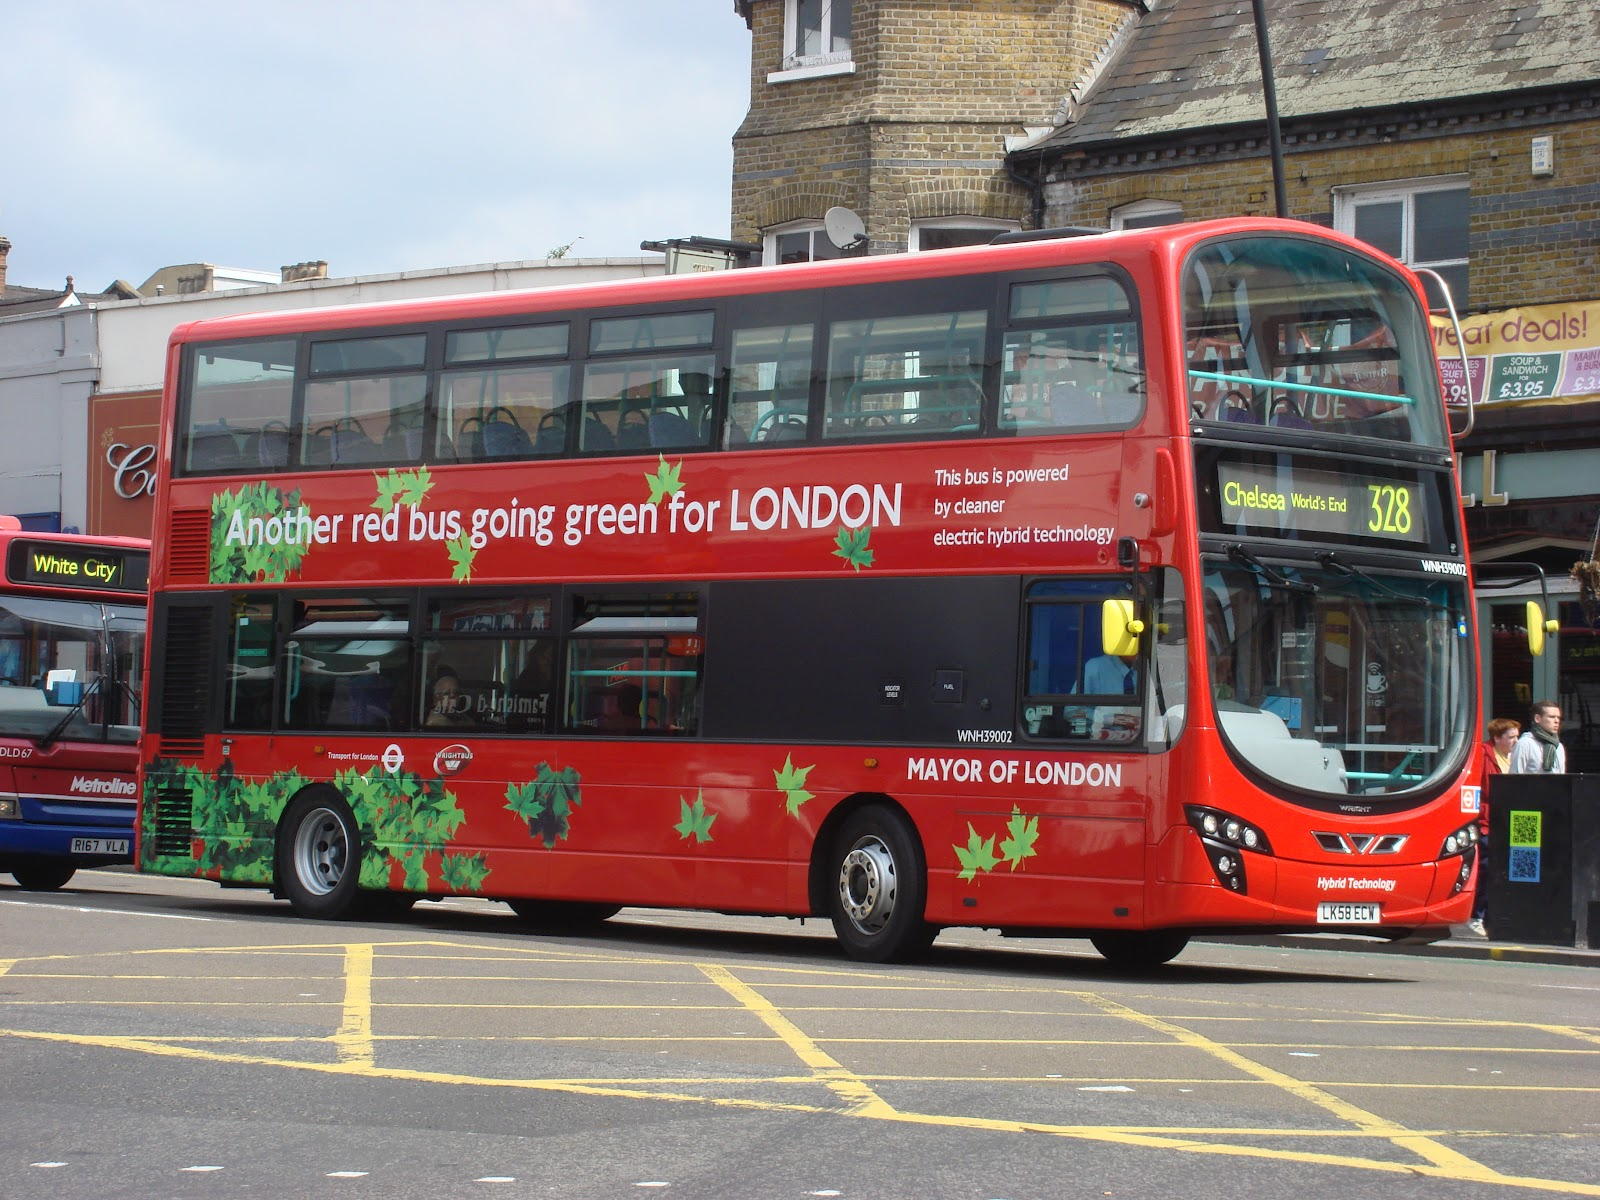 ( Photo: London's hybrid bus)